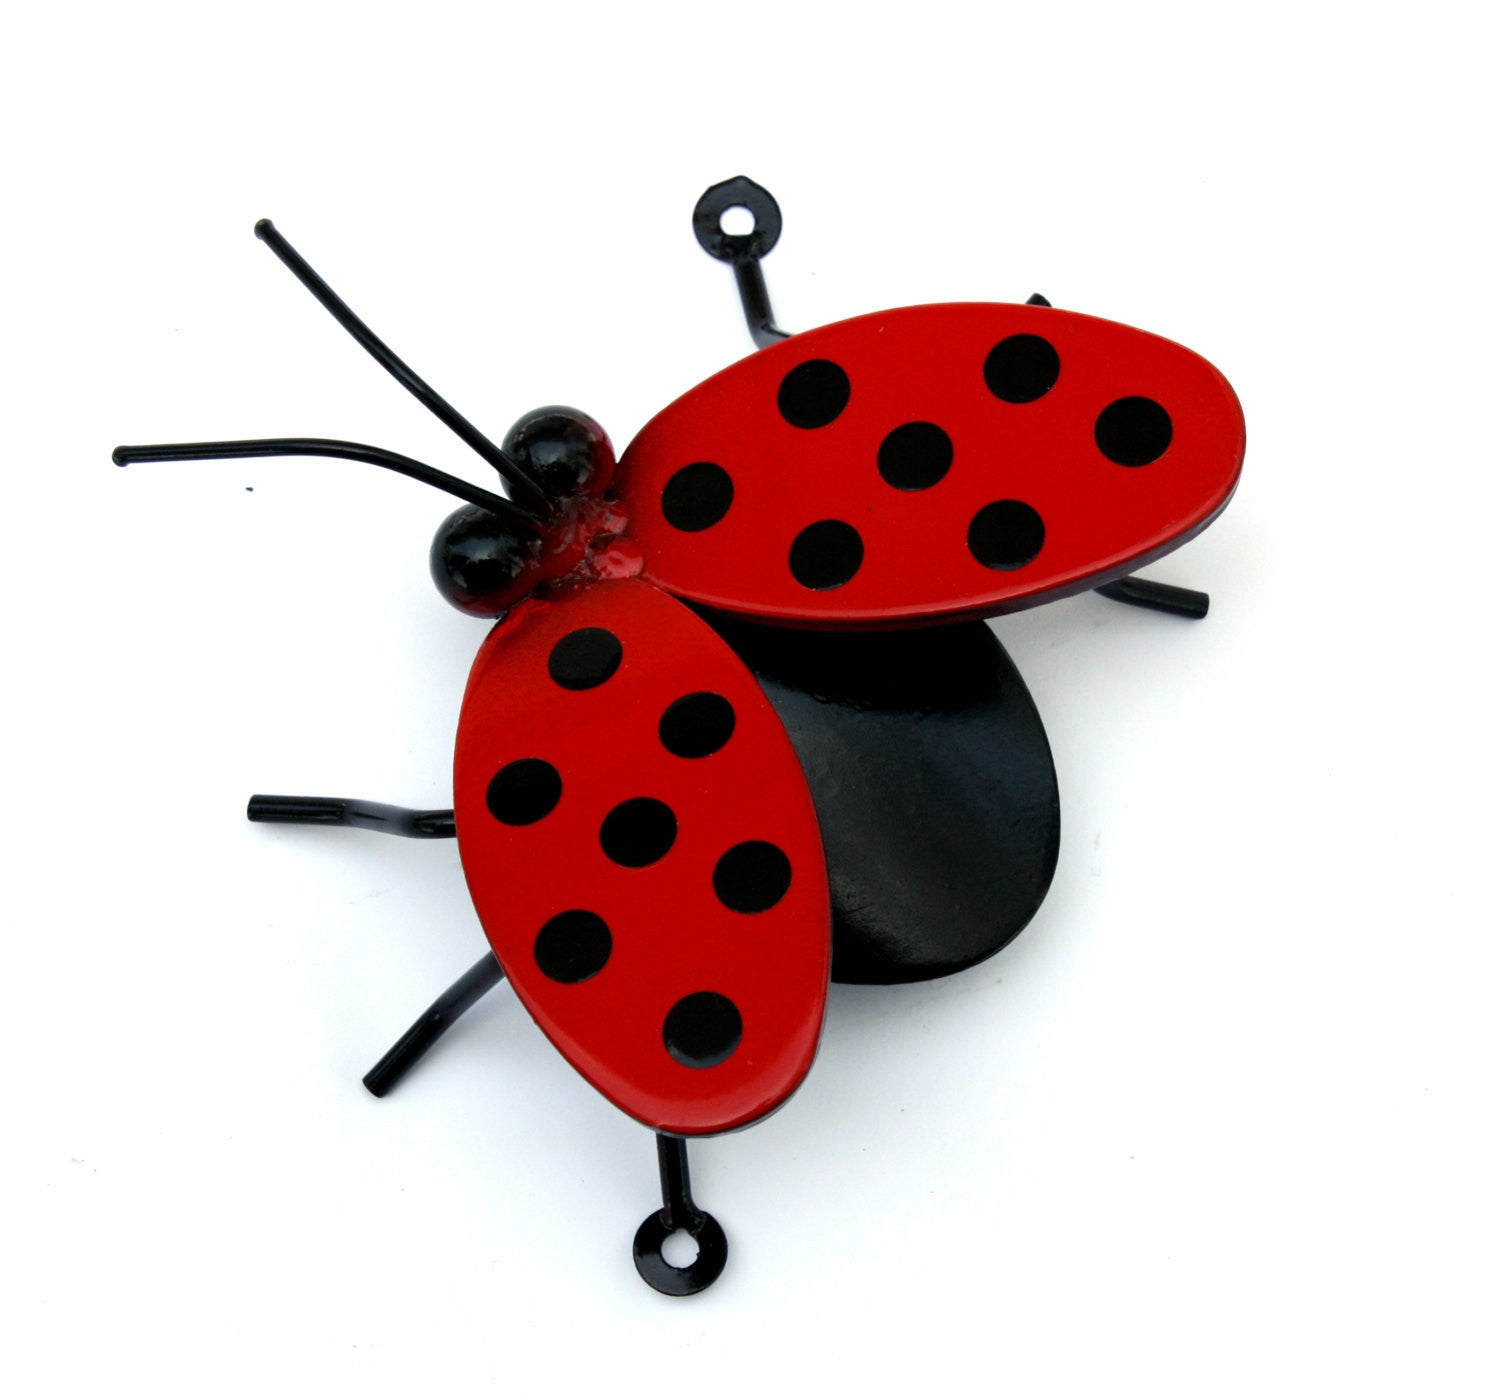 Ladybug Flying / Wings Open: Metal Art Ladybugs On A Garden Stake